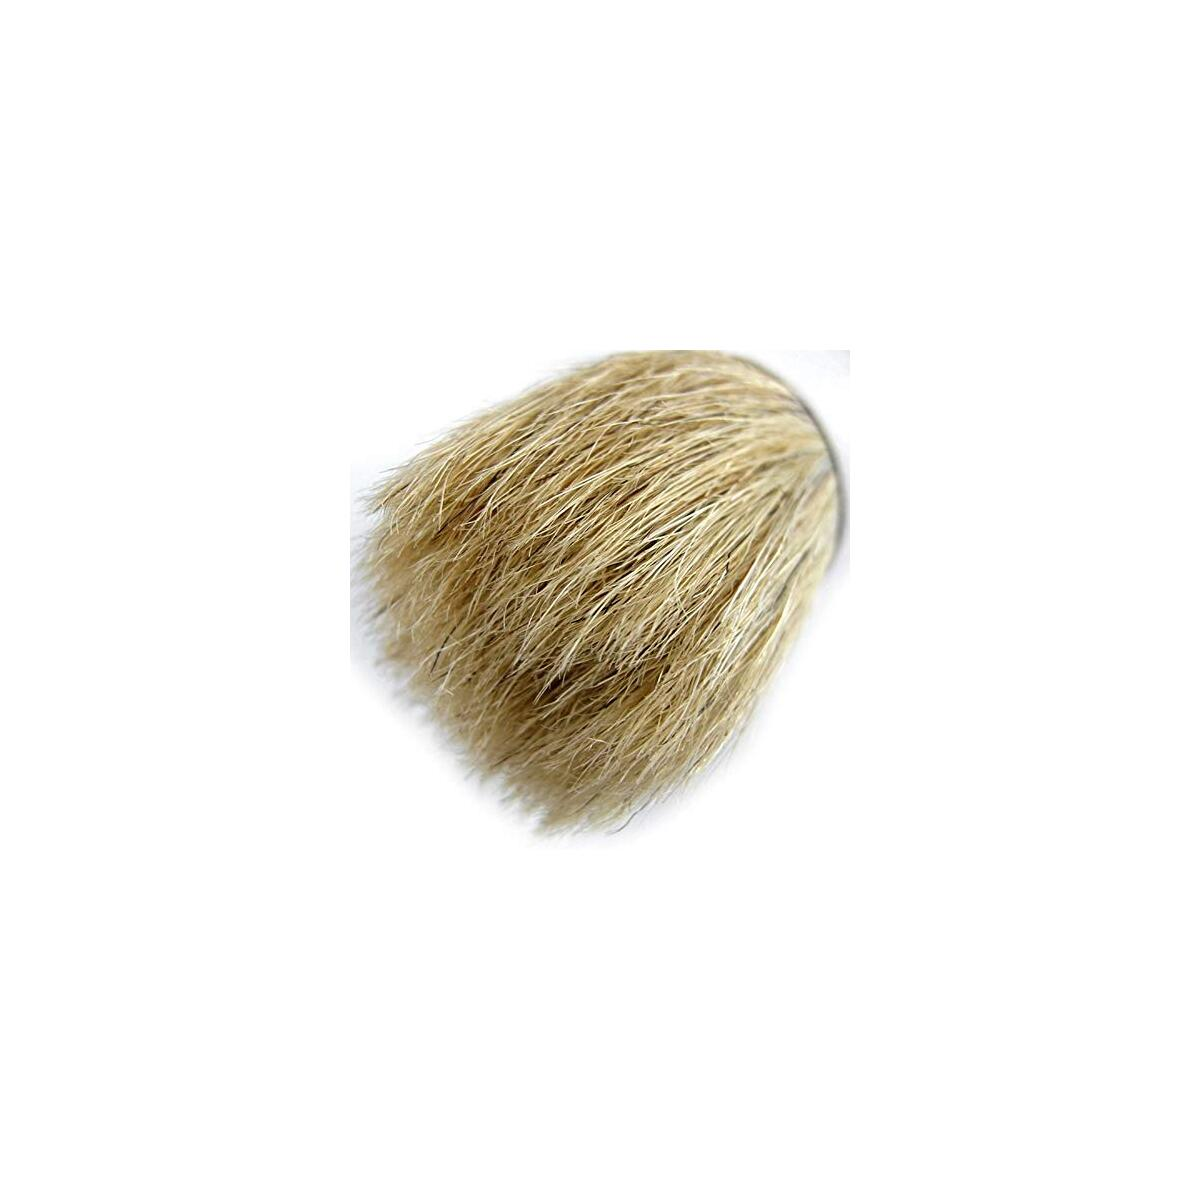 RE Professional 45MM Chalk Painting Brush and Wax Brush, Large Refined Bristles